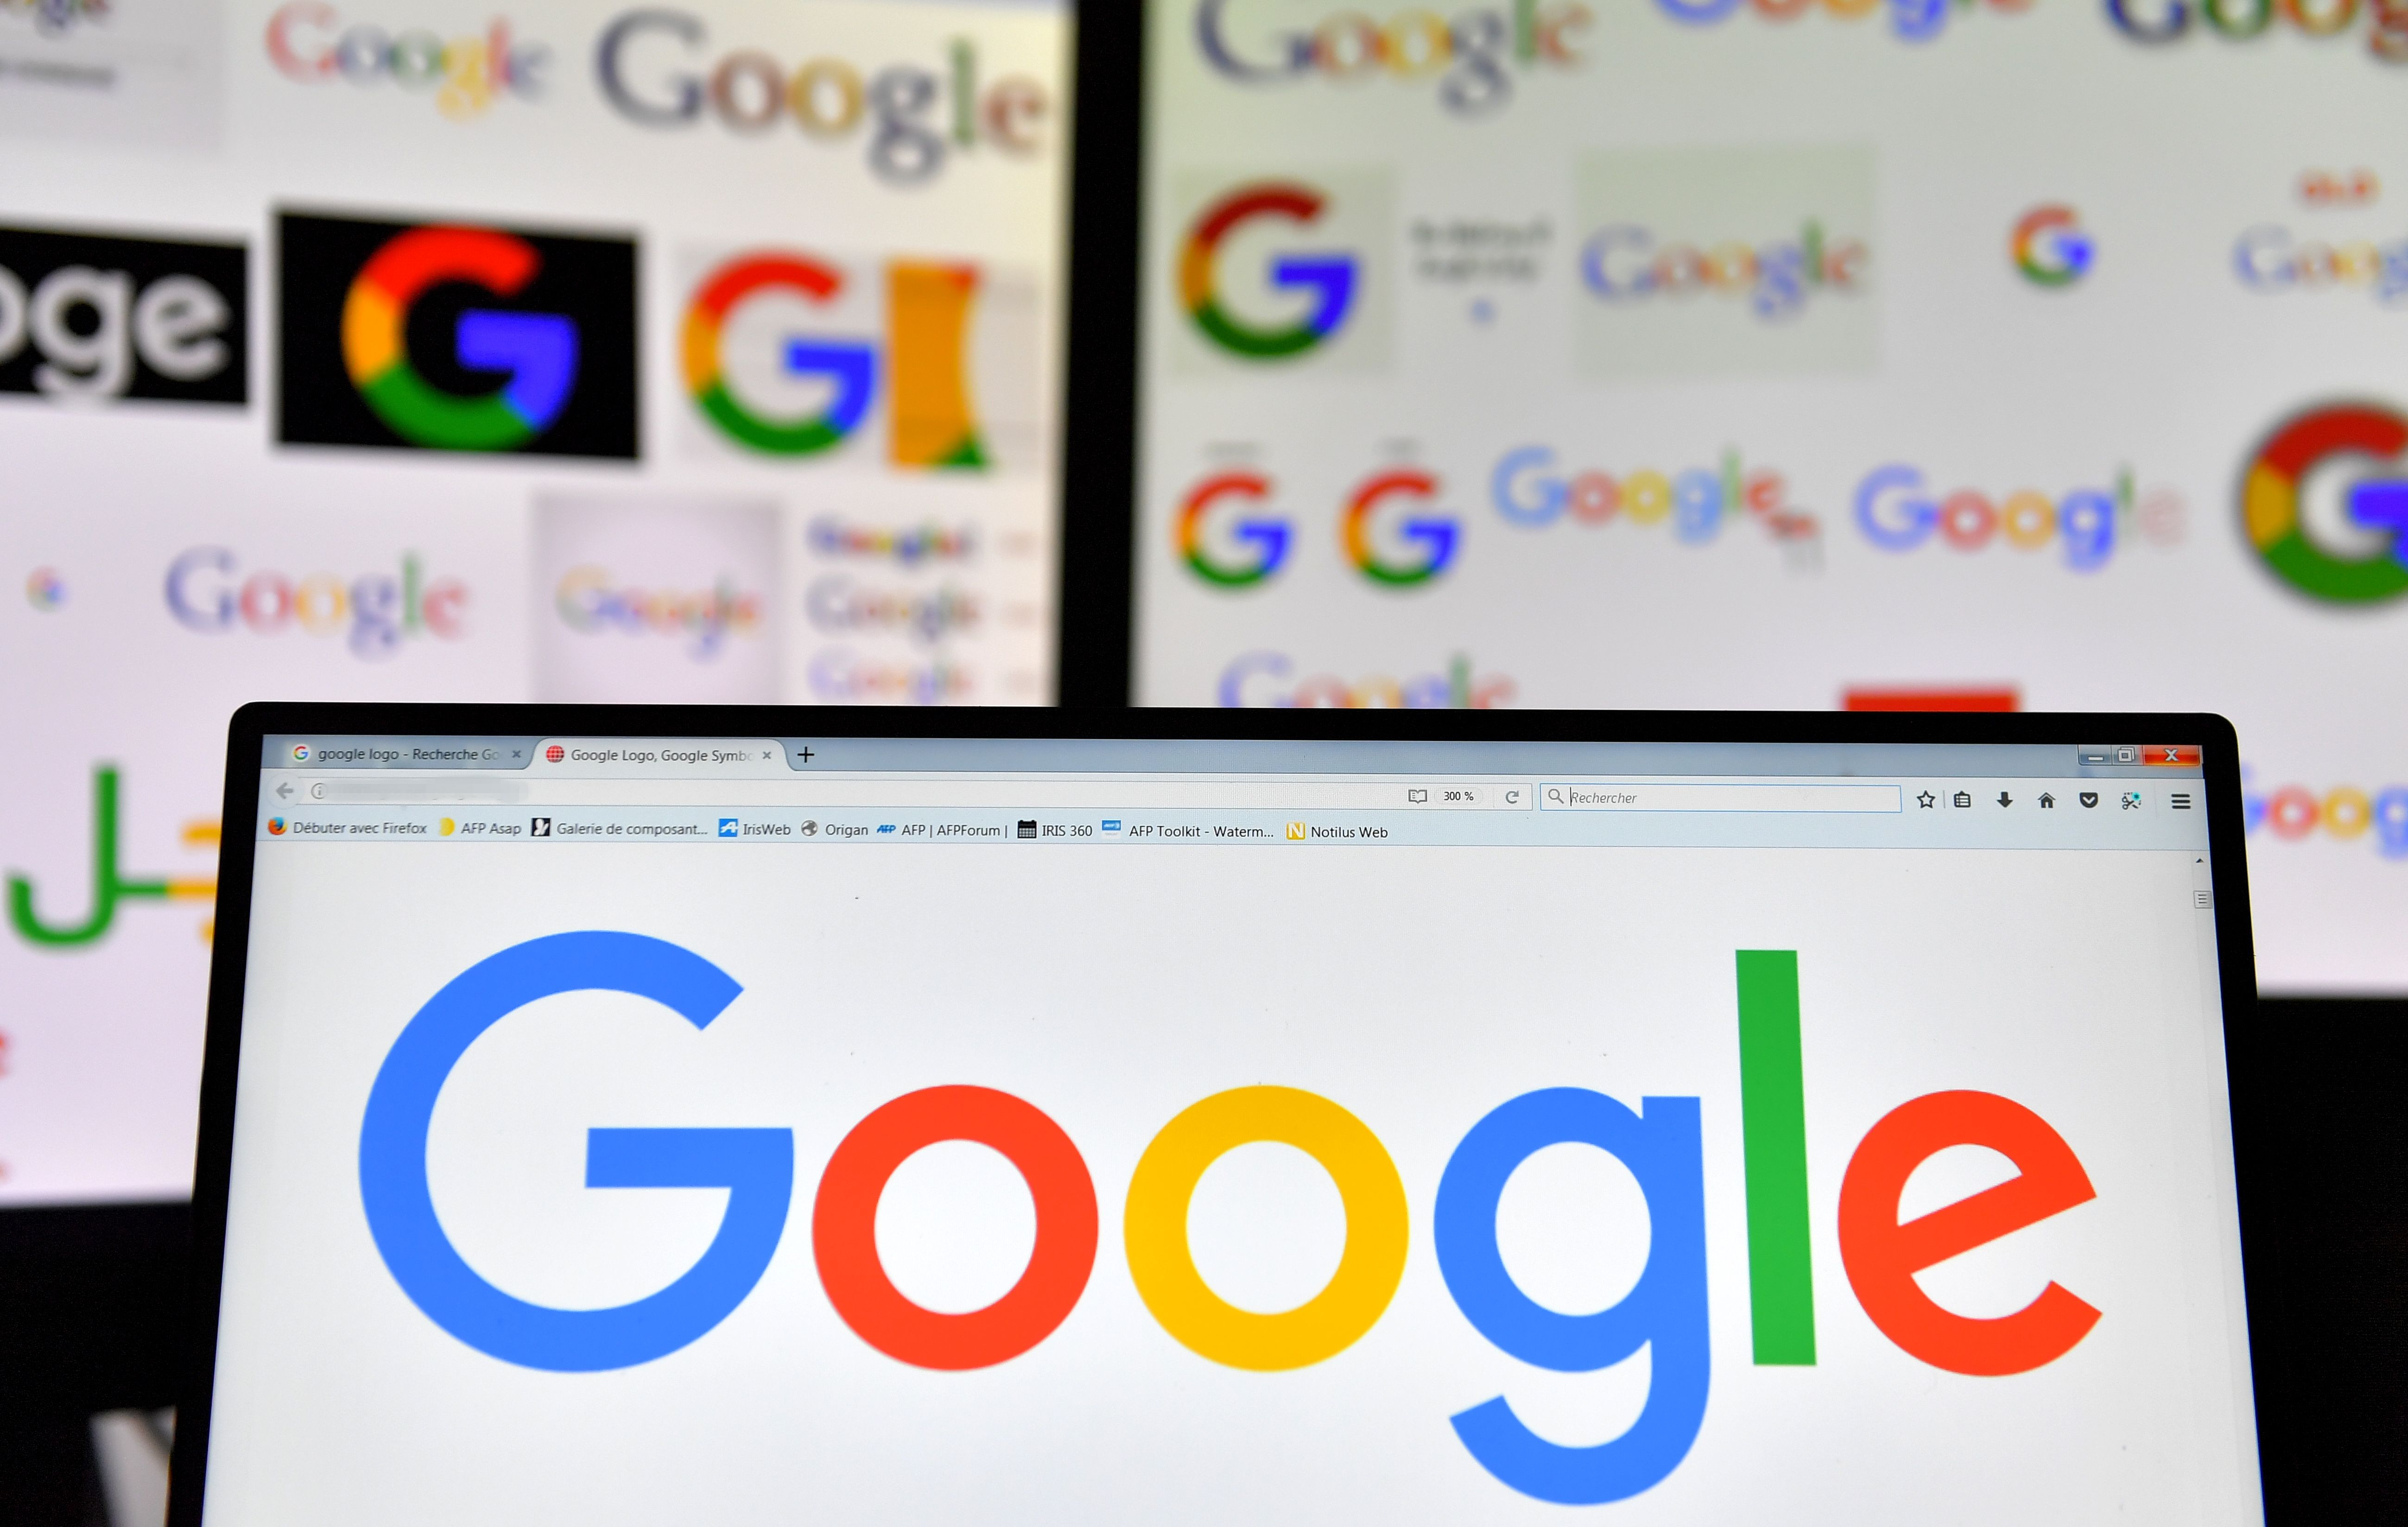 Google's logo is seen displayed on computer screens.